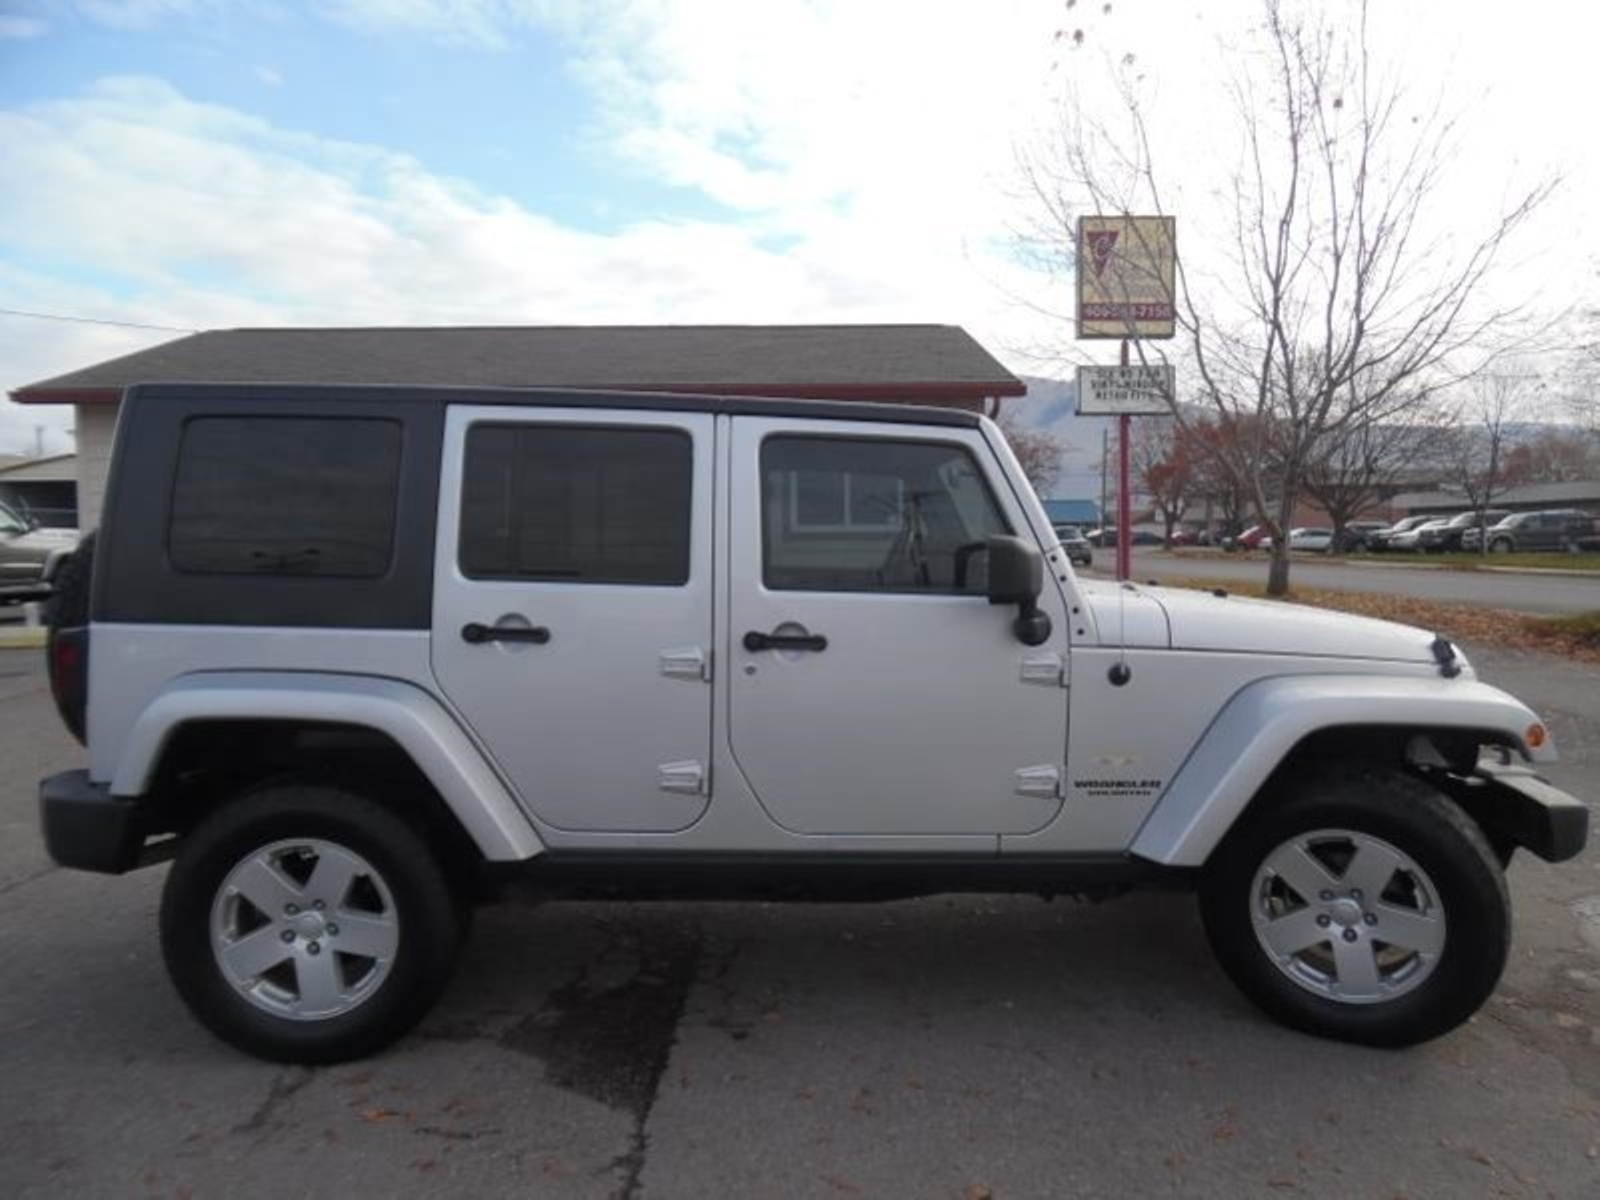 2008 jeep wrangler unlimited sahara city montana montana for 2008 jeep wrangler motor